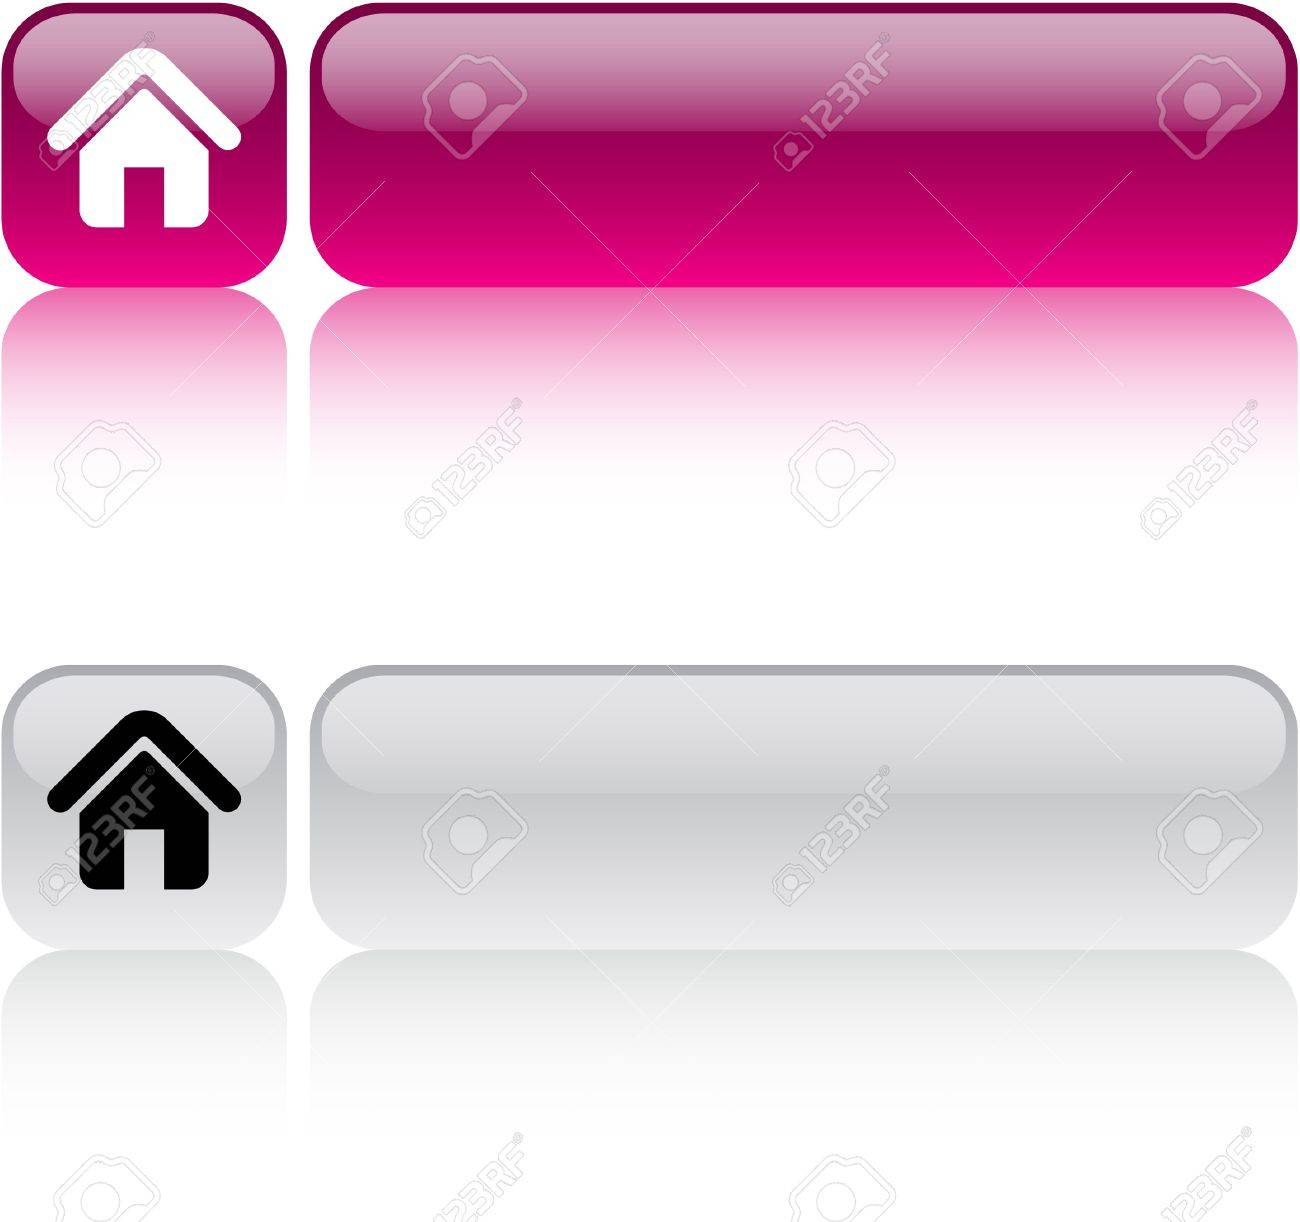 Home glossy square web buttons. Stock Vector - 7436831